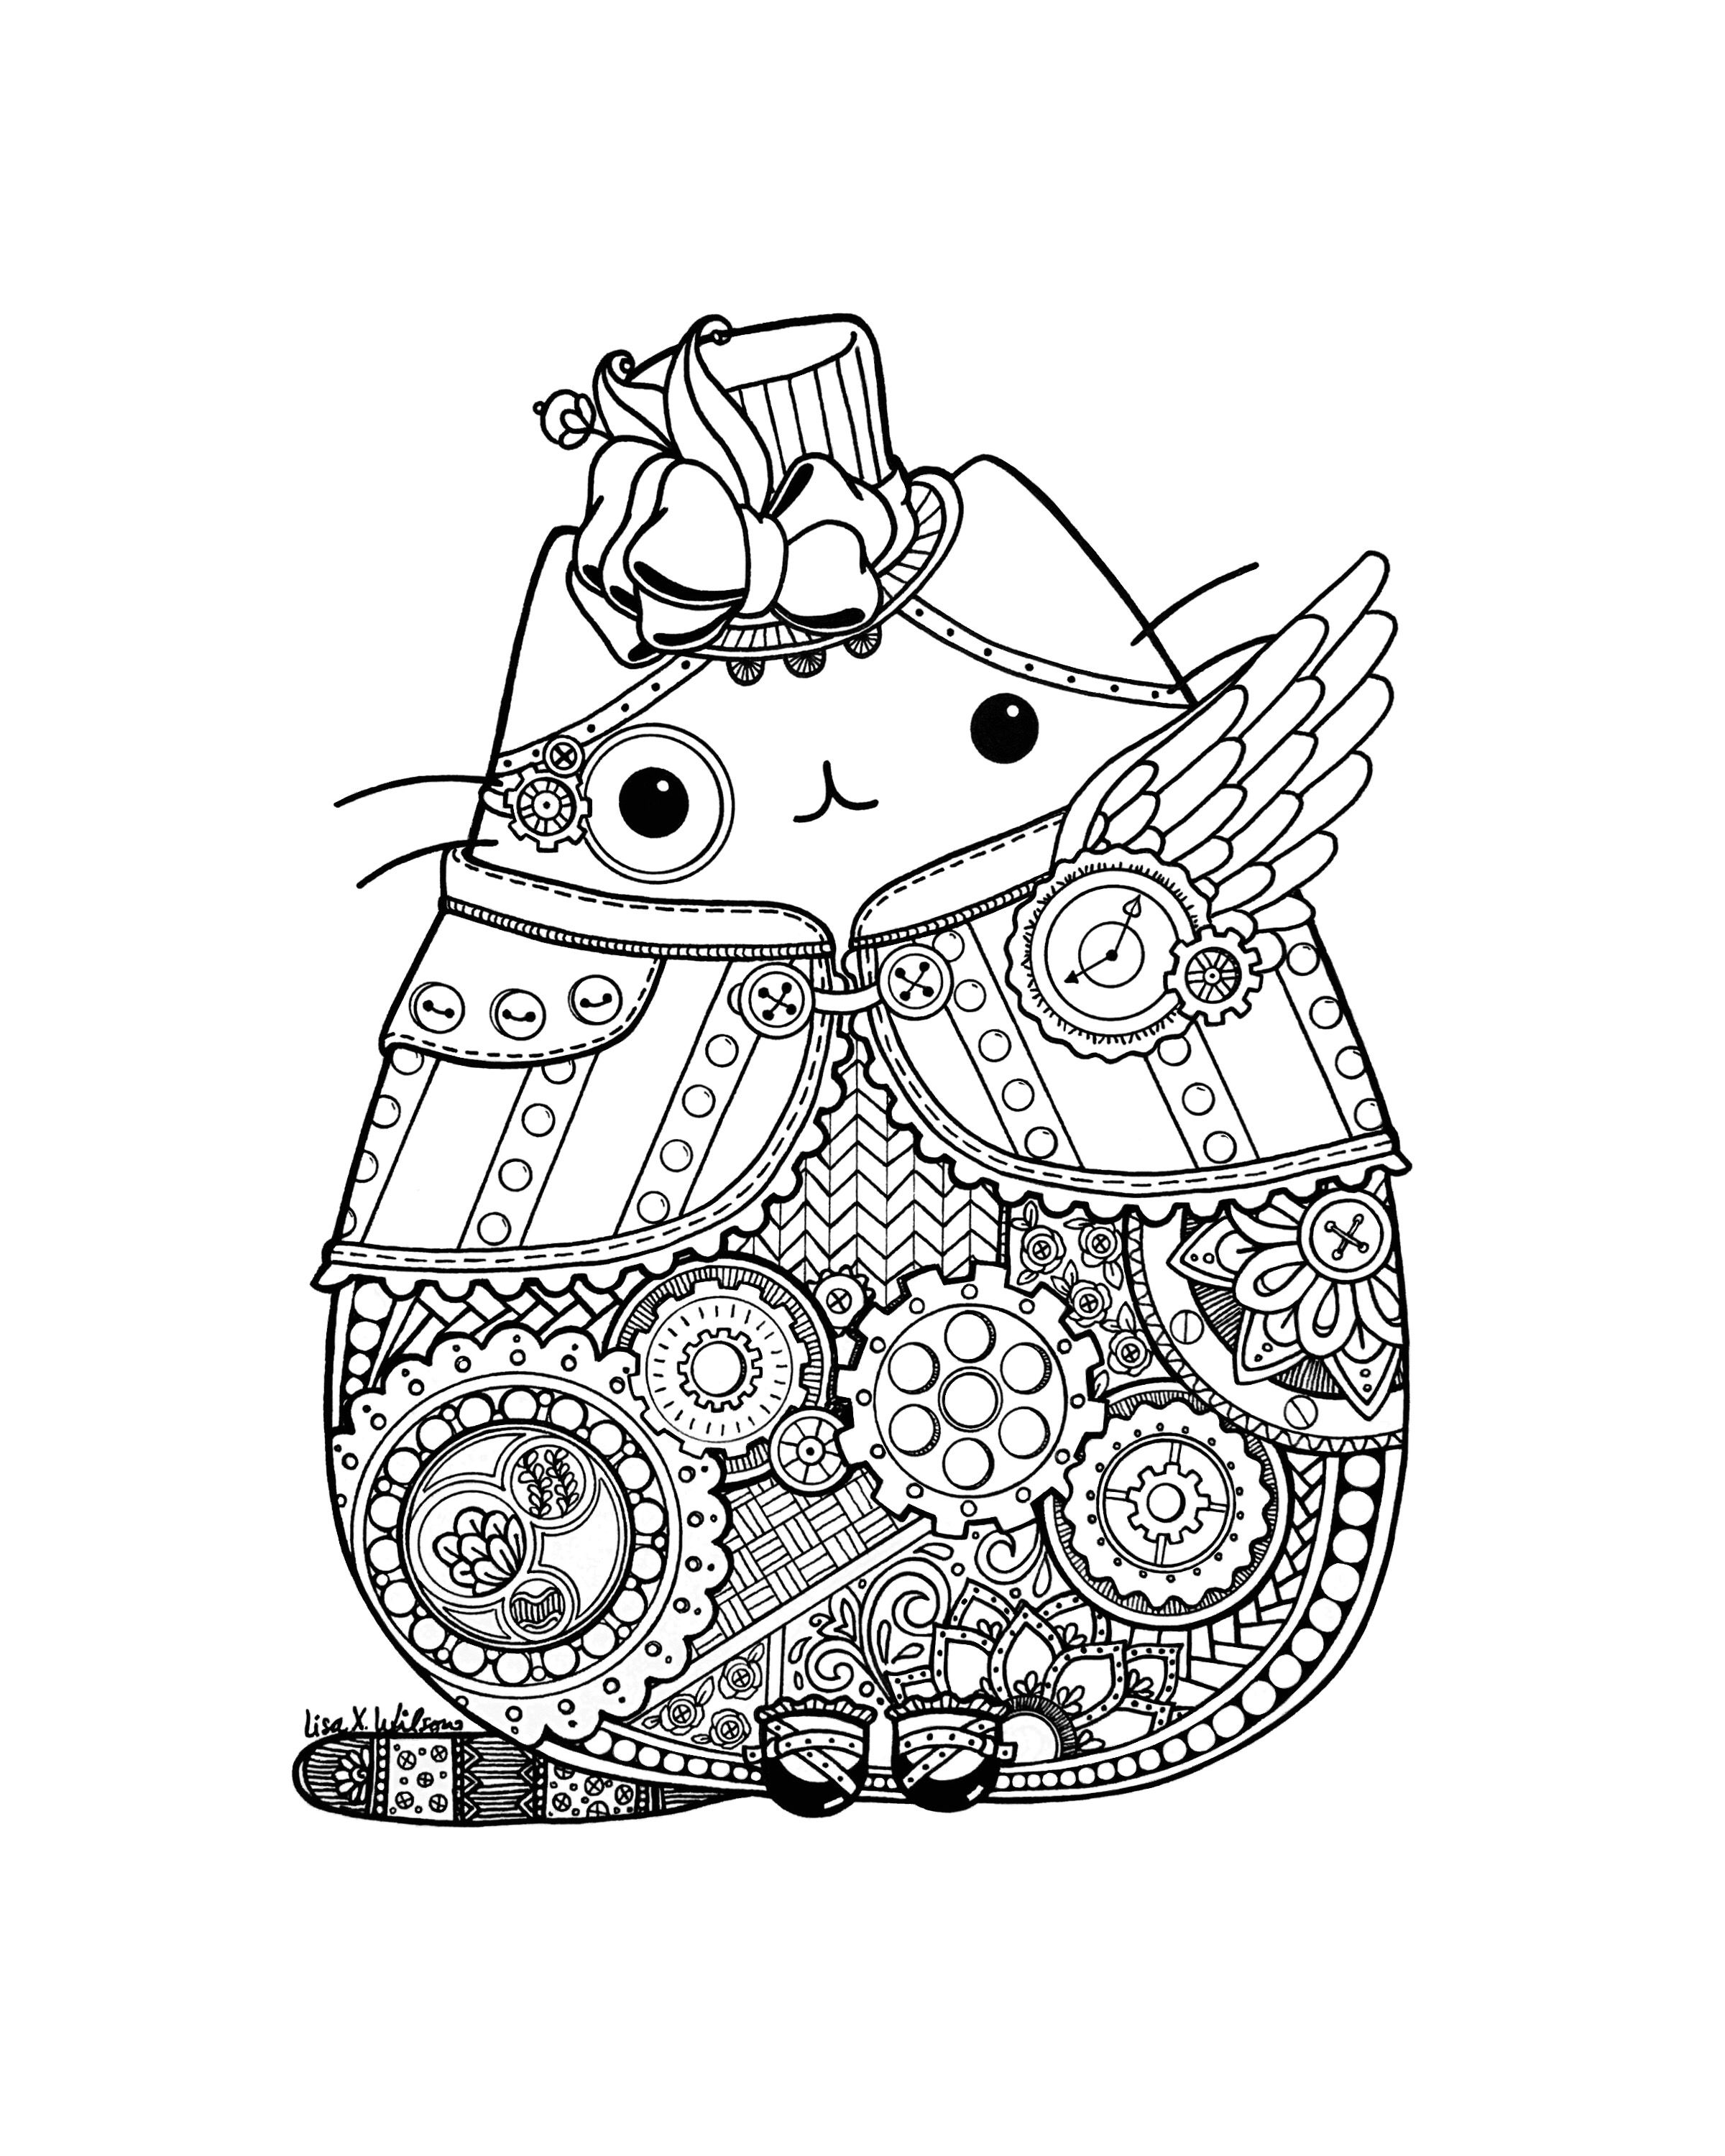 Steampunk Pusheen fan art | gatos 2 | Pinterest | Mandalas, Colorear ...